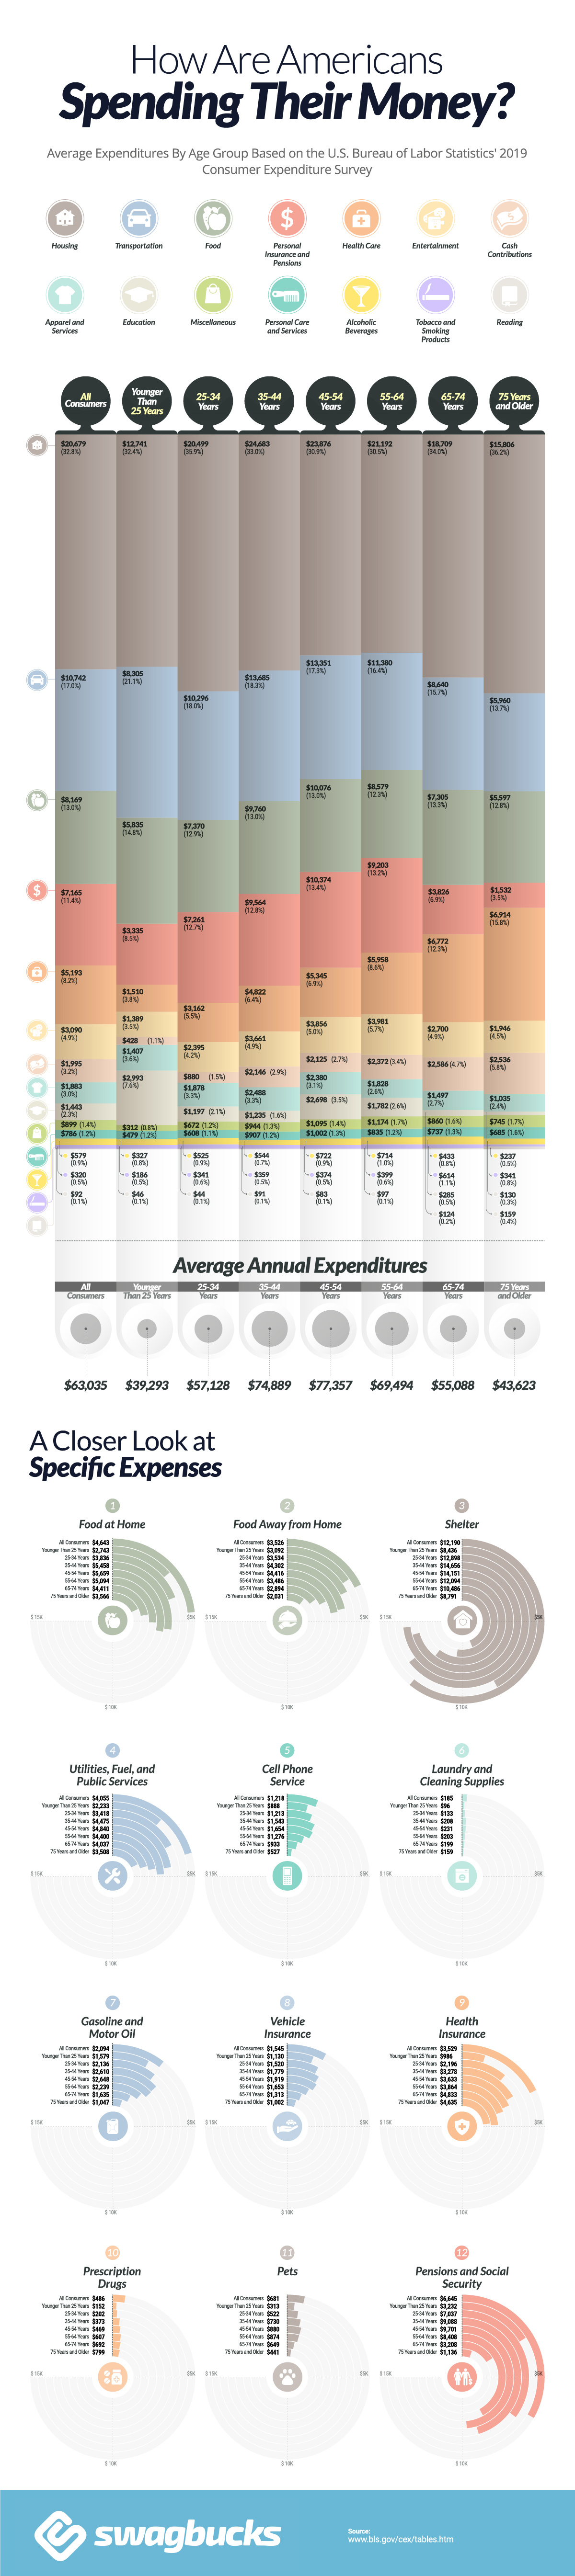 How Americans of Each Generation Spend Their Money